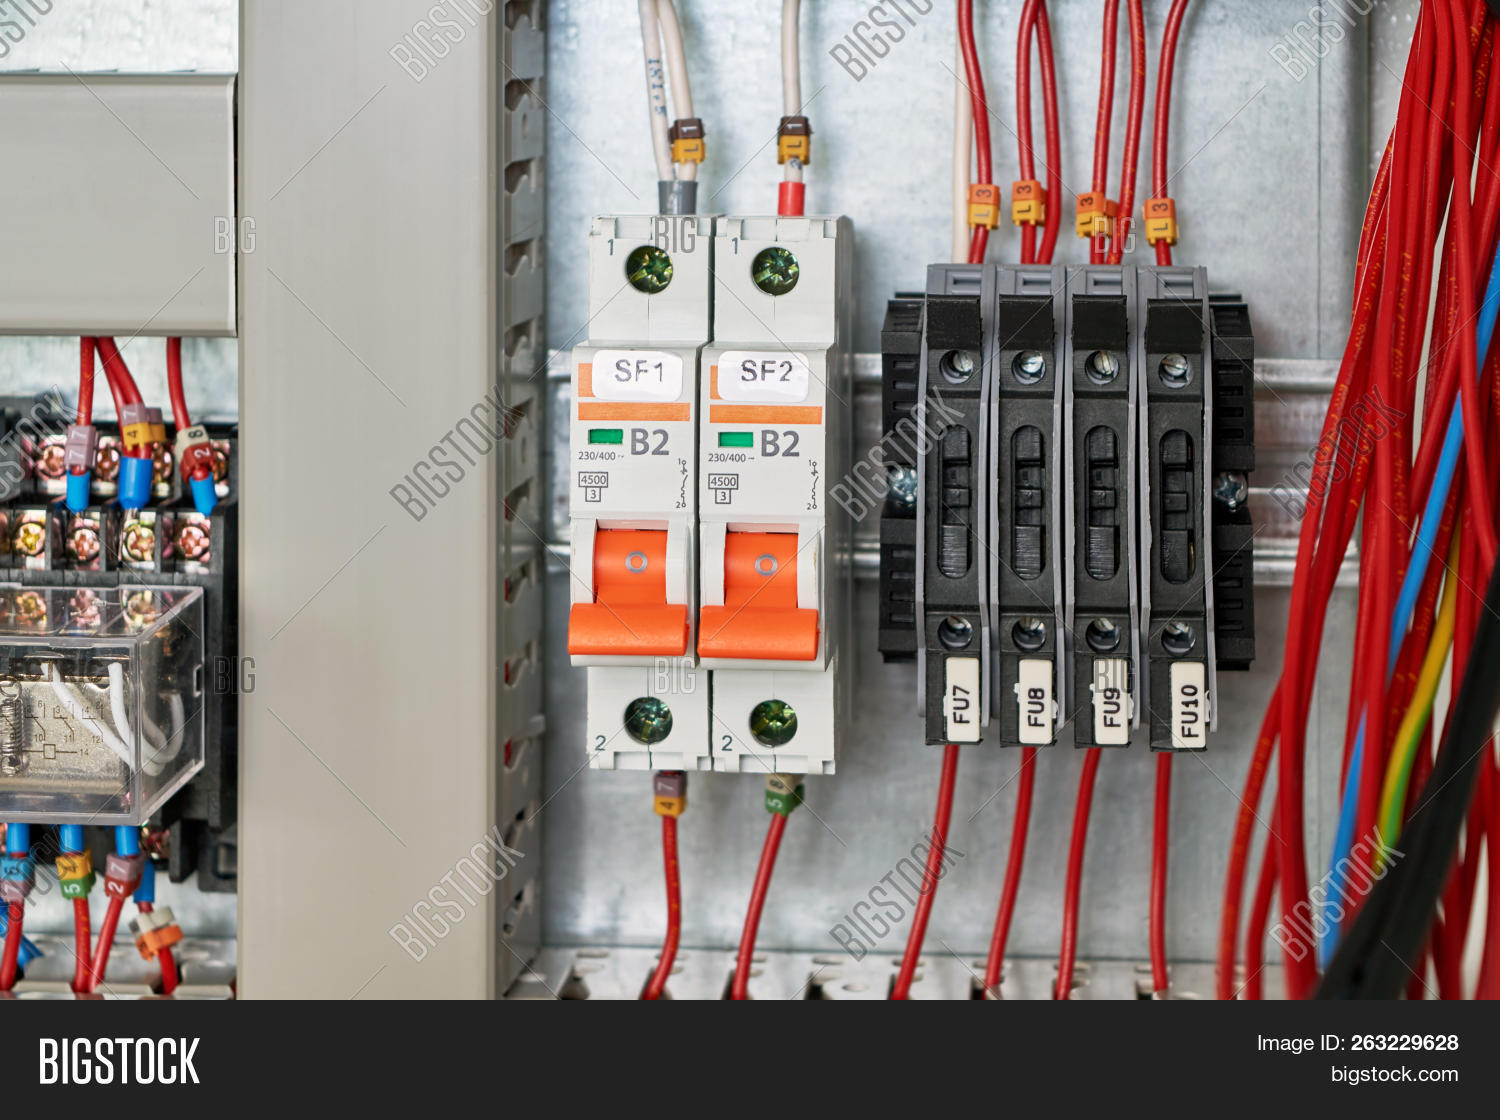 Magnificent Electrical Cabinet Image Photo Free Trial Bigstock Wiring Digital Resources Tziciprontobusorg